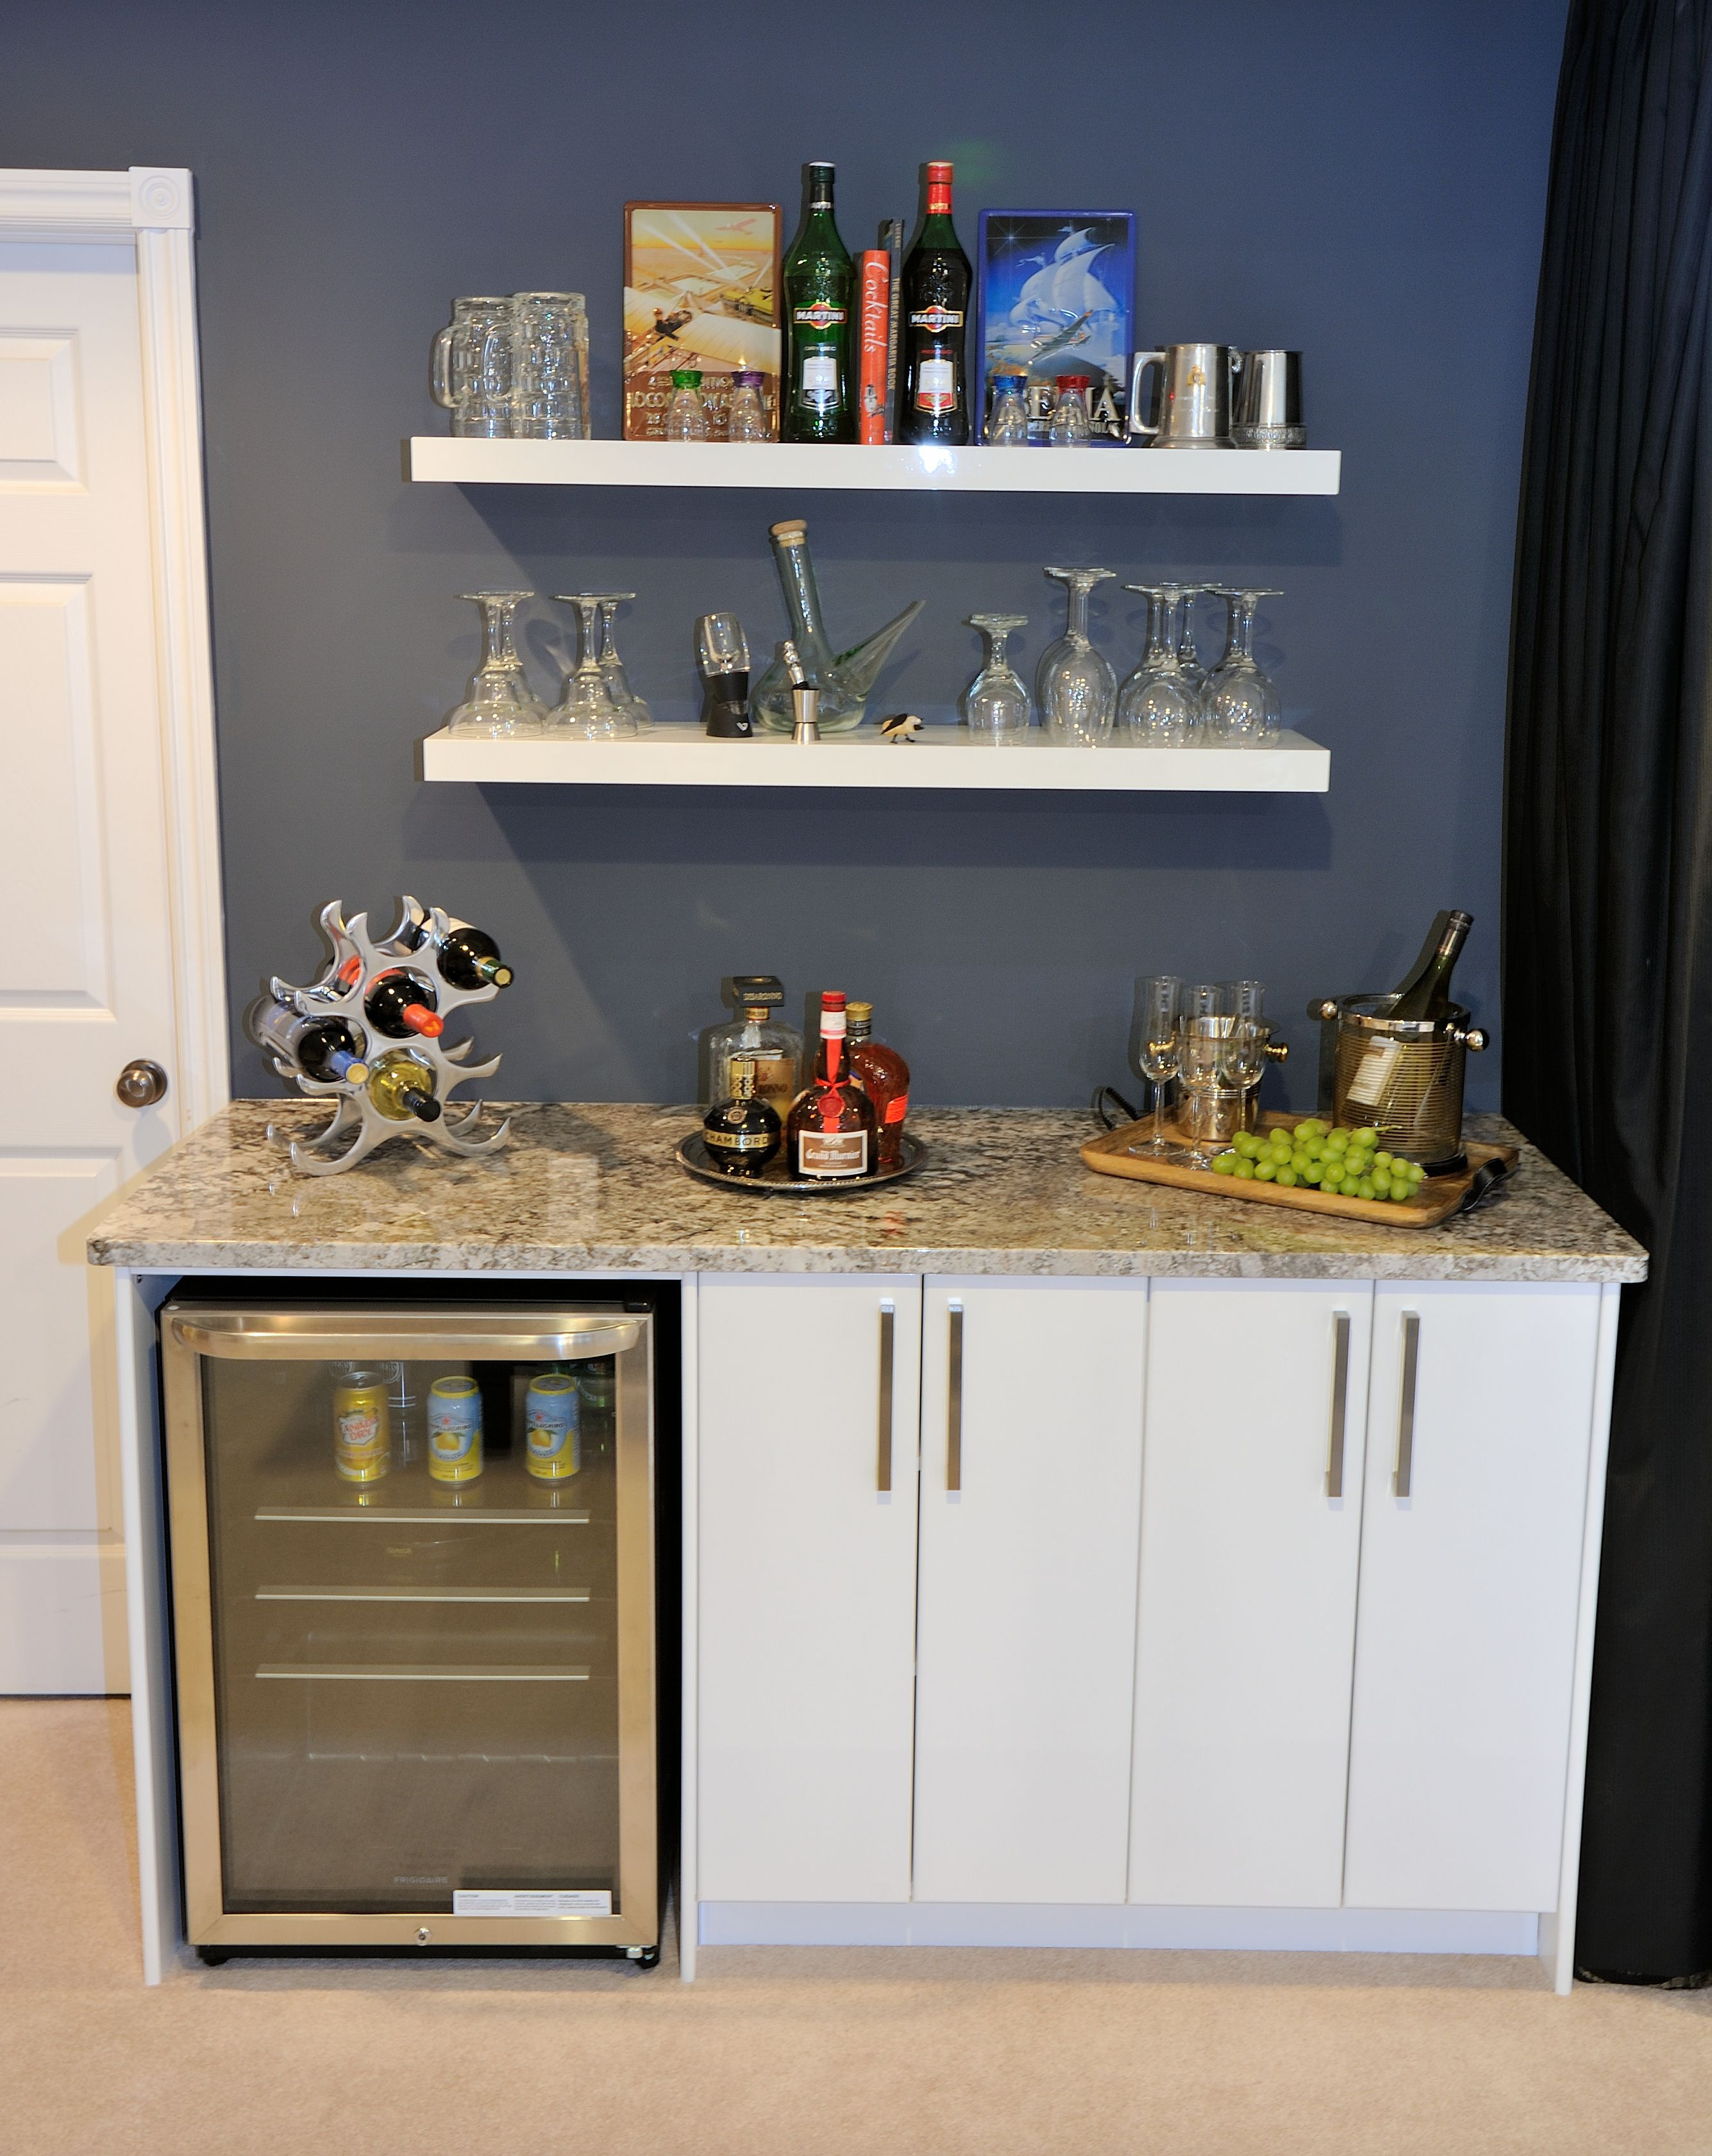 Built In Custom Cabinets With Bar Fride, Beautiful Granite Countertop,  Floating Shelves